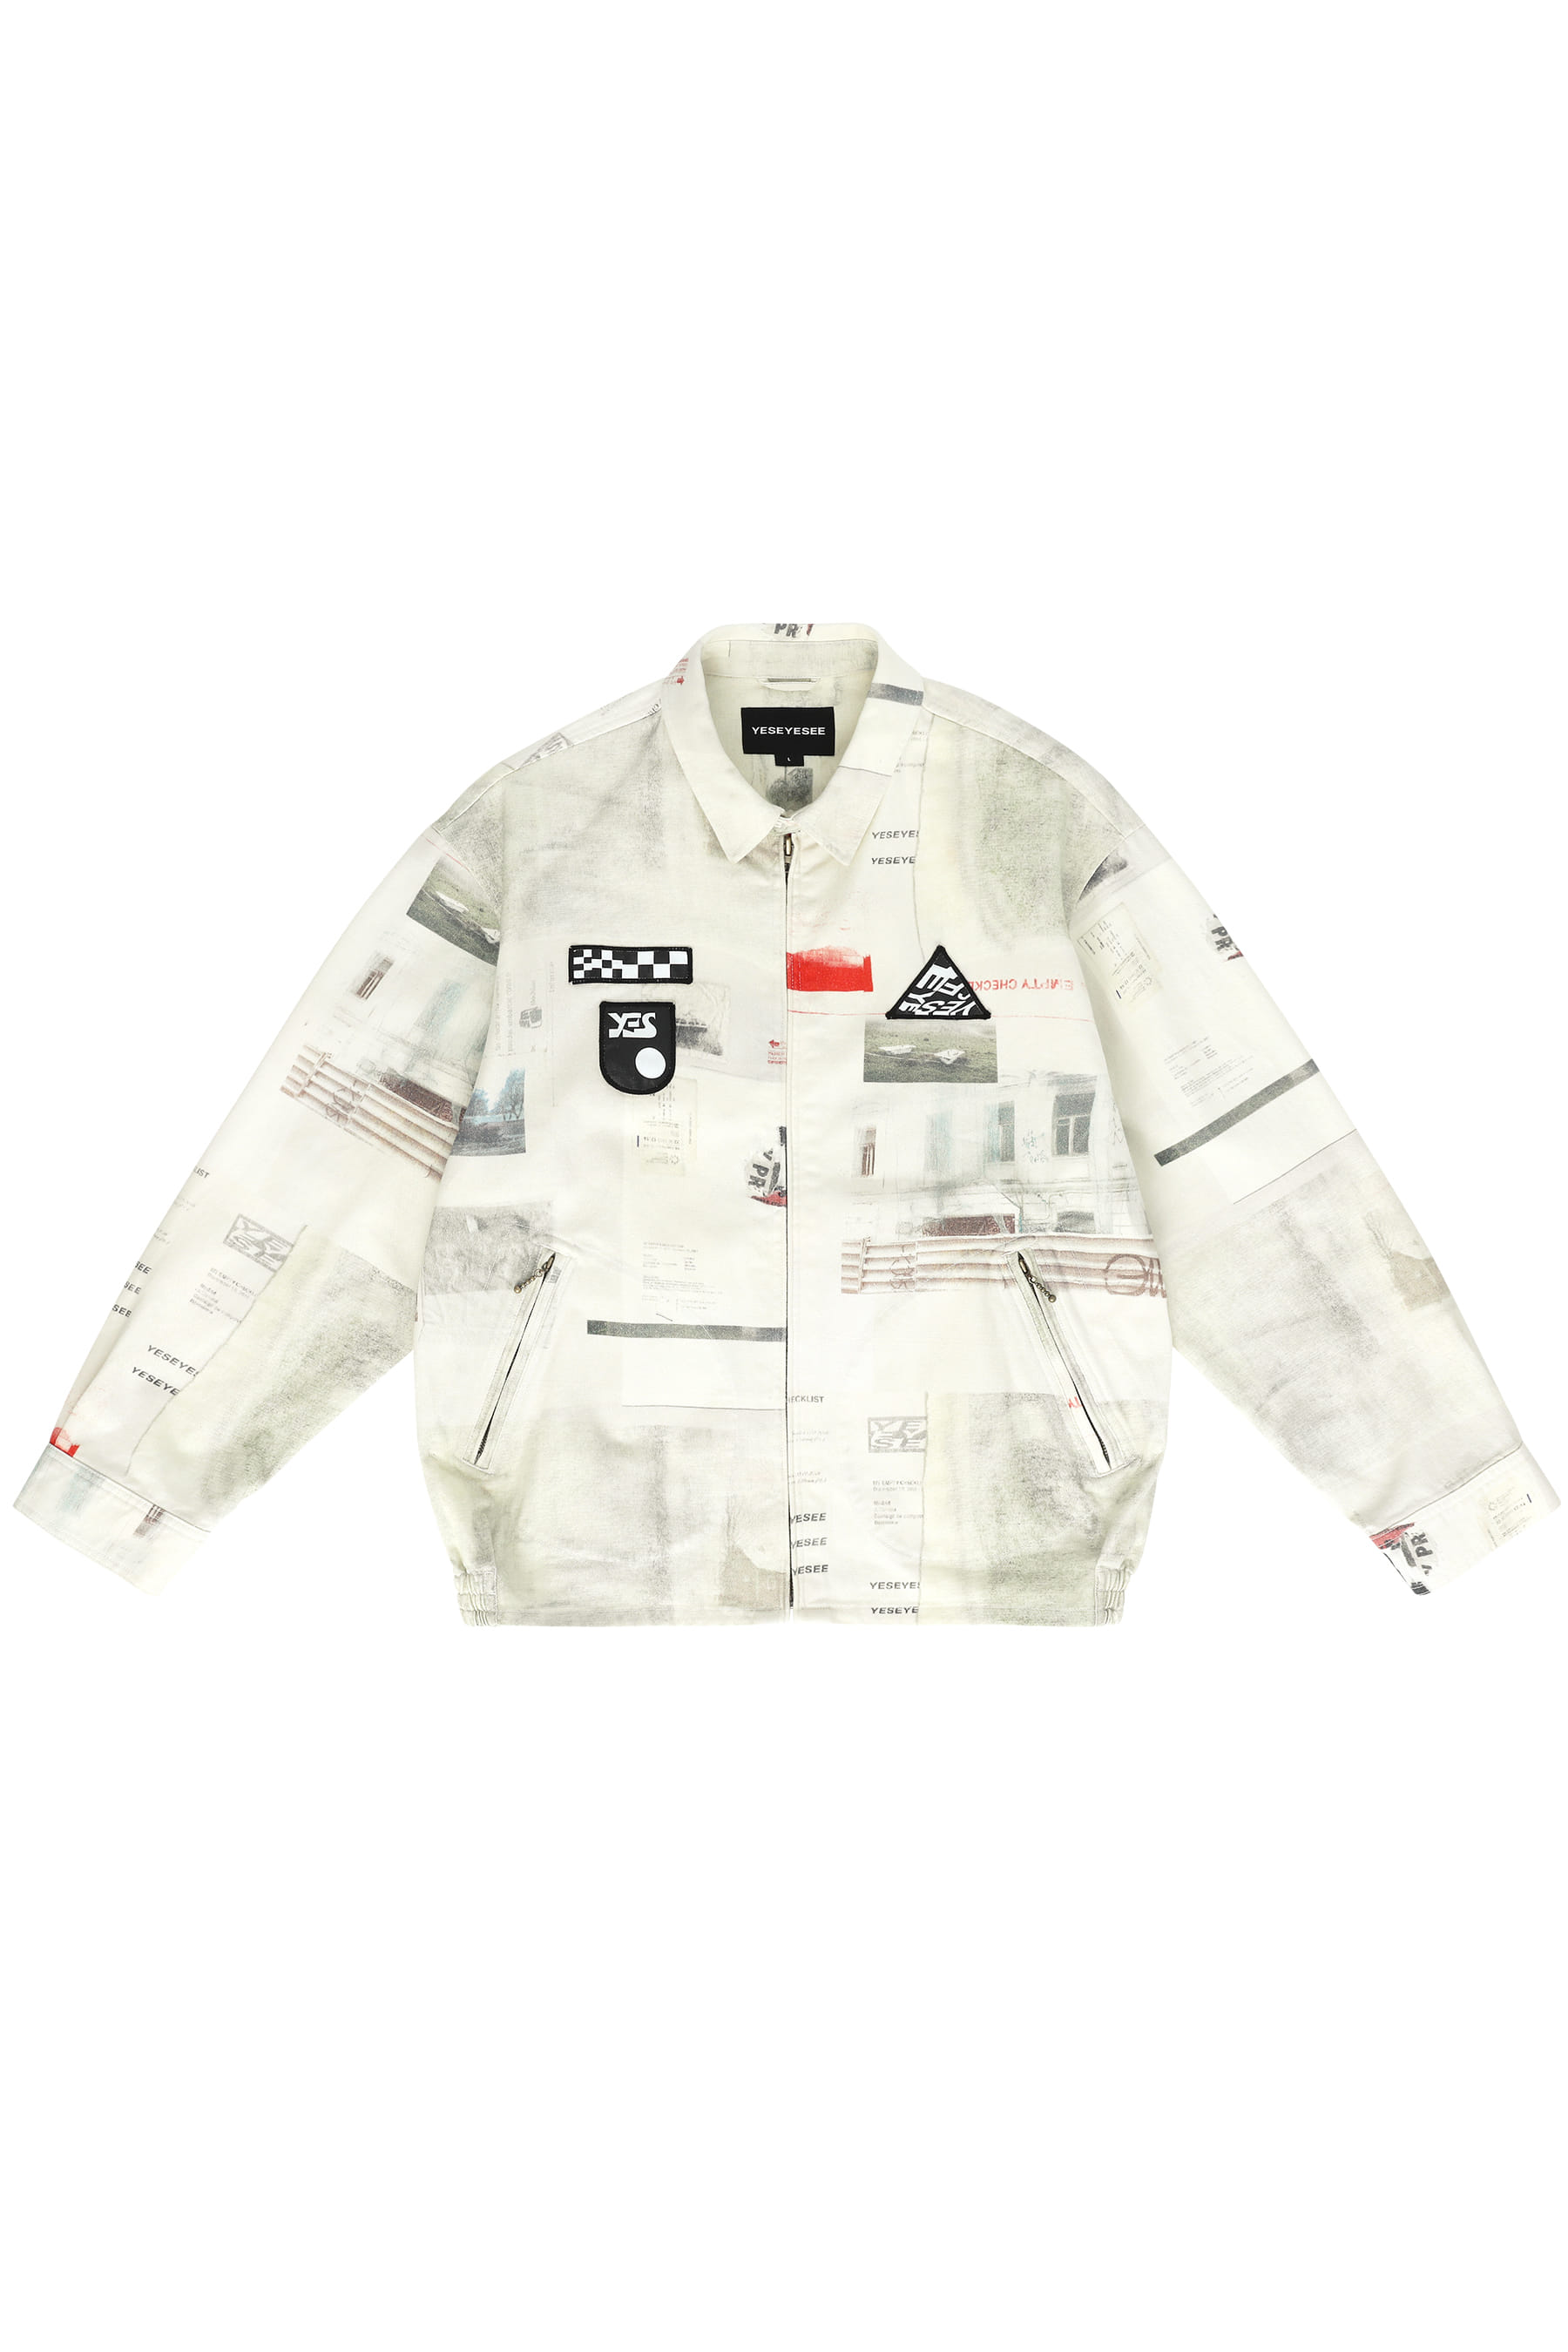 Patched Zip Jacket White